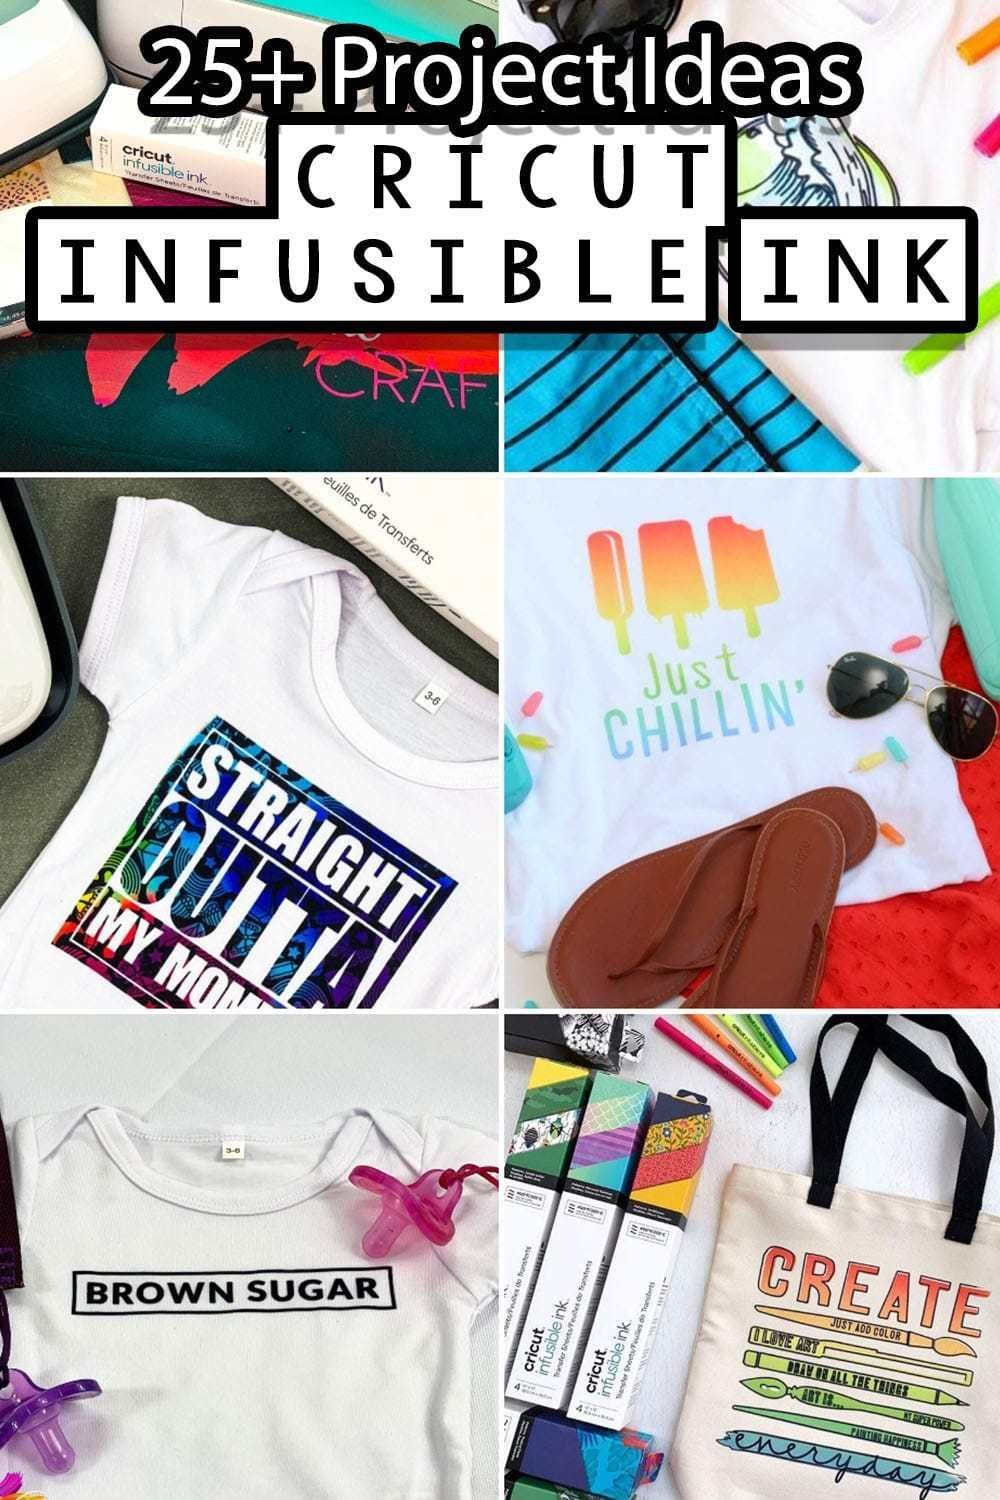 25+ Cricut Infusible Ink Project Ideas Cricut, Projects, Ink